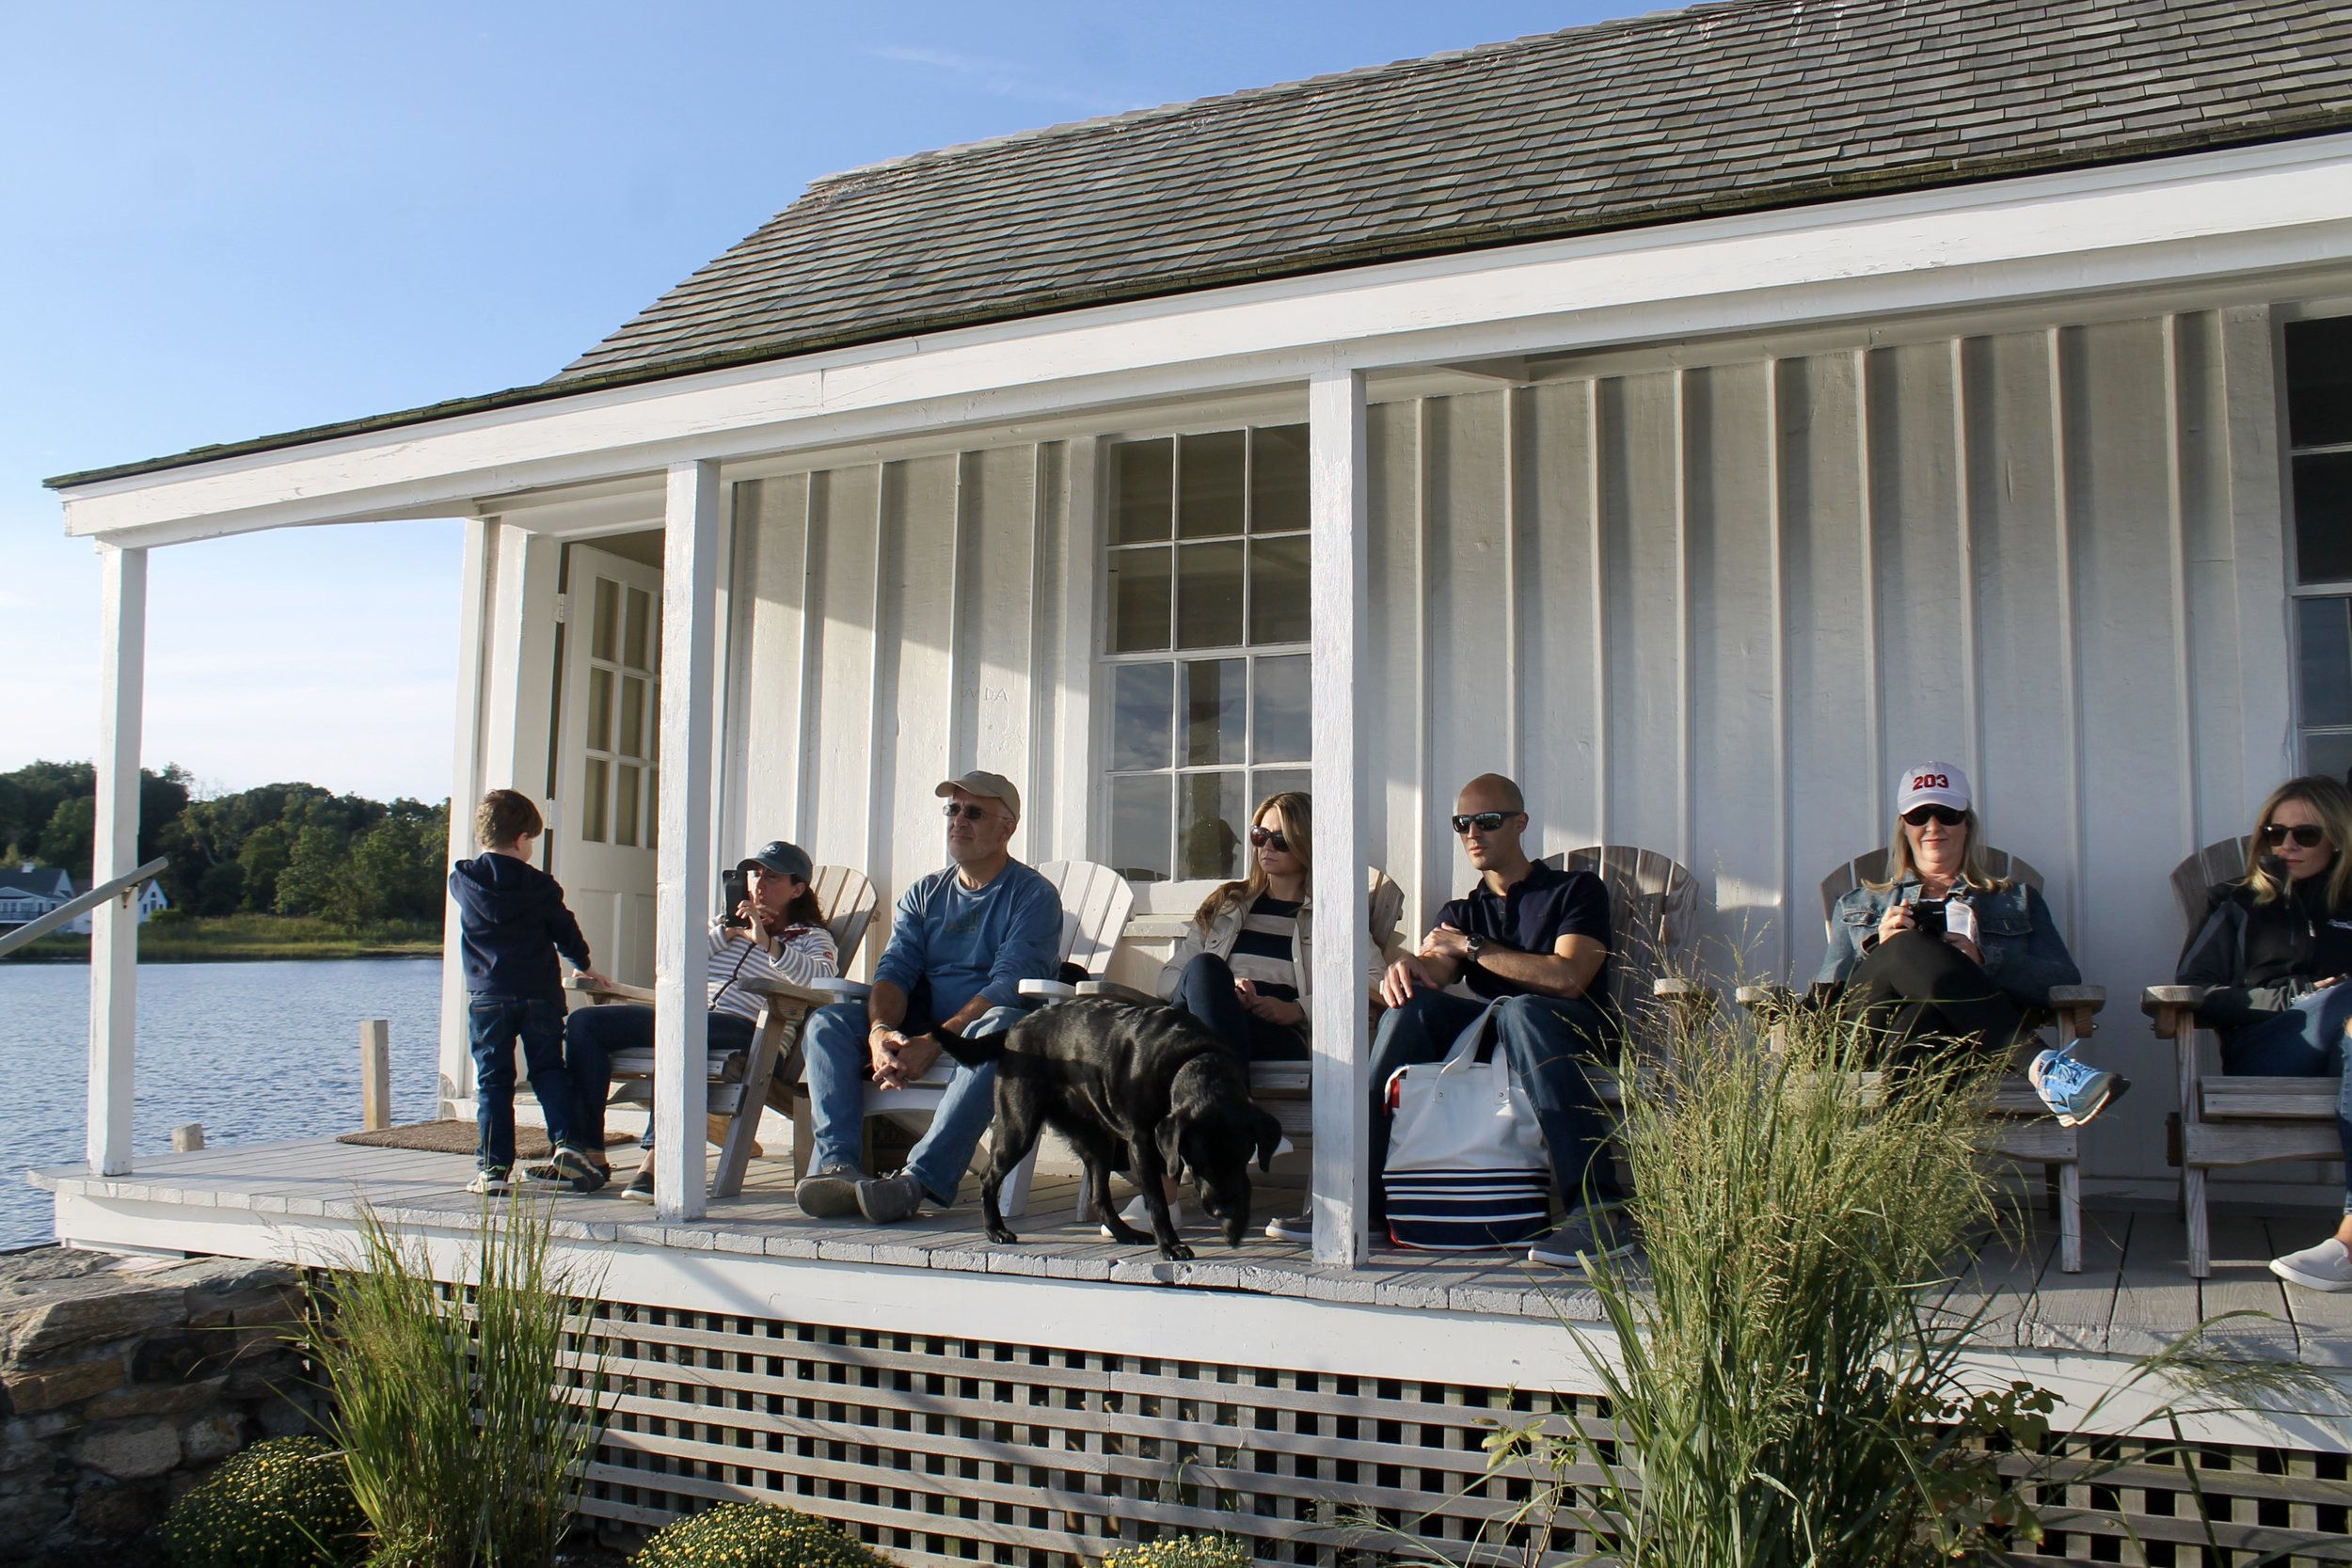 Guests enjoy themselves on the porch as Jeff Sr. discusses the intricacies of oyster farming